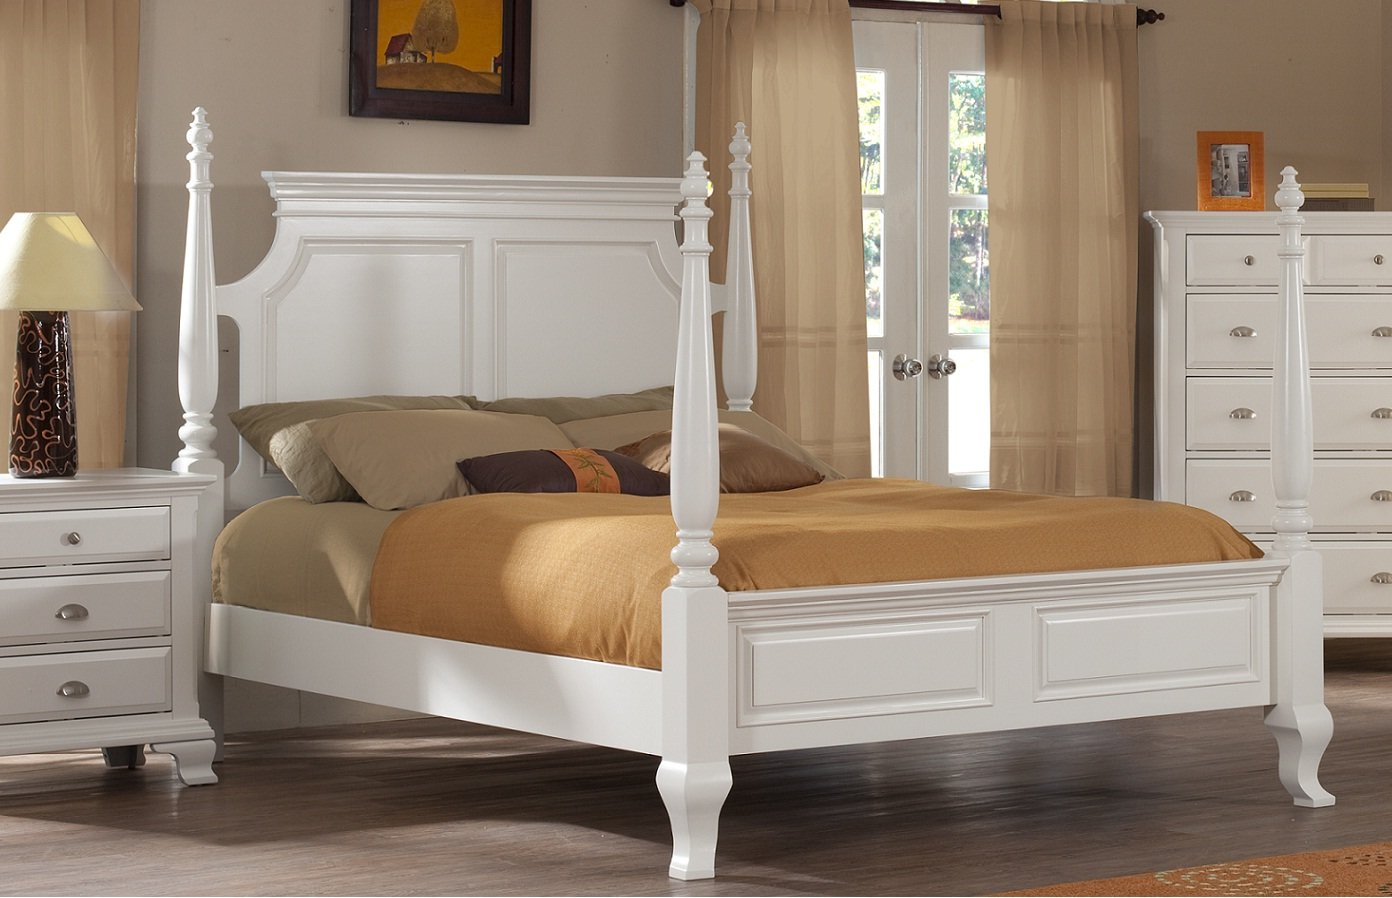 Amazoncom Roundhill Furniture Laveno 012 White Wood